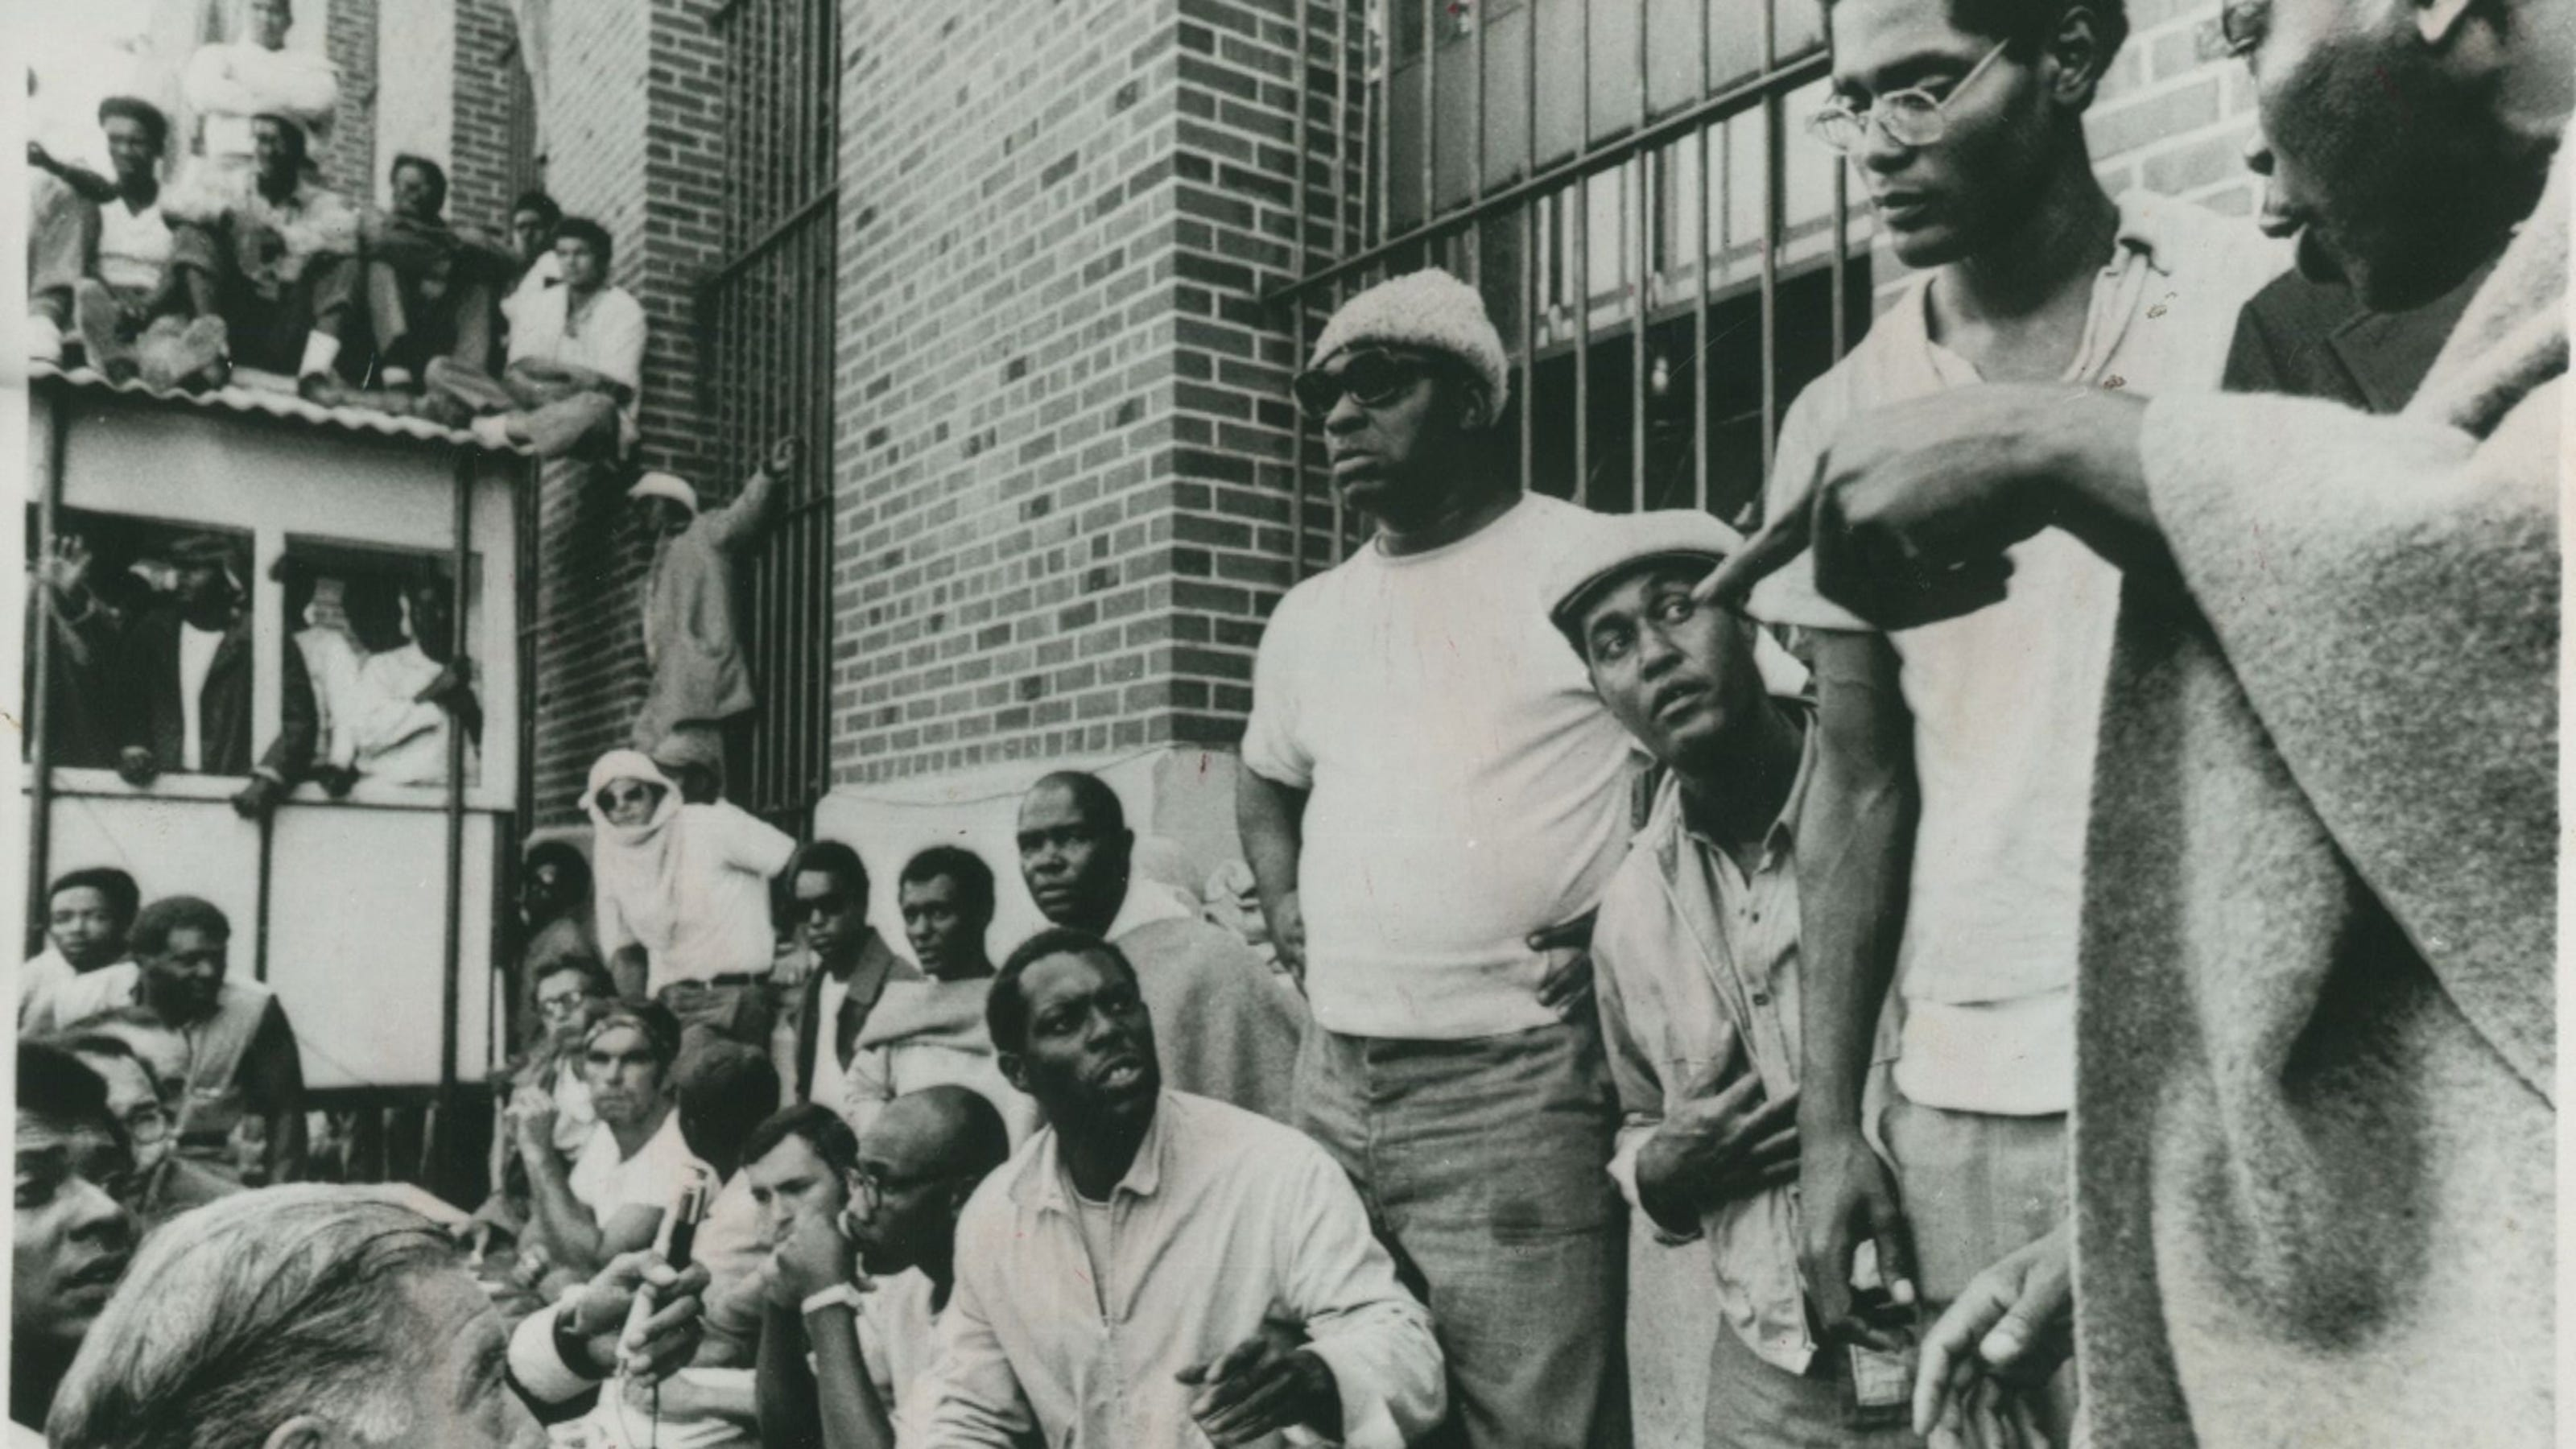 prison life history and today One man's story of reintegration with the modern world  my life after  in  august 2014, johnson was released from prison after serving a 44-year   having lost all family connections while serving his sentence, johnson now relies  on.